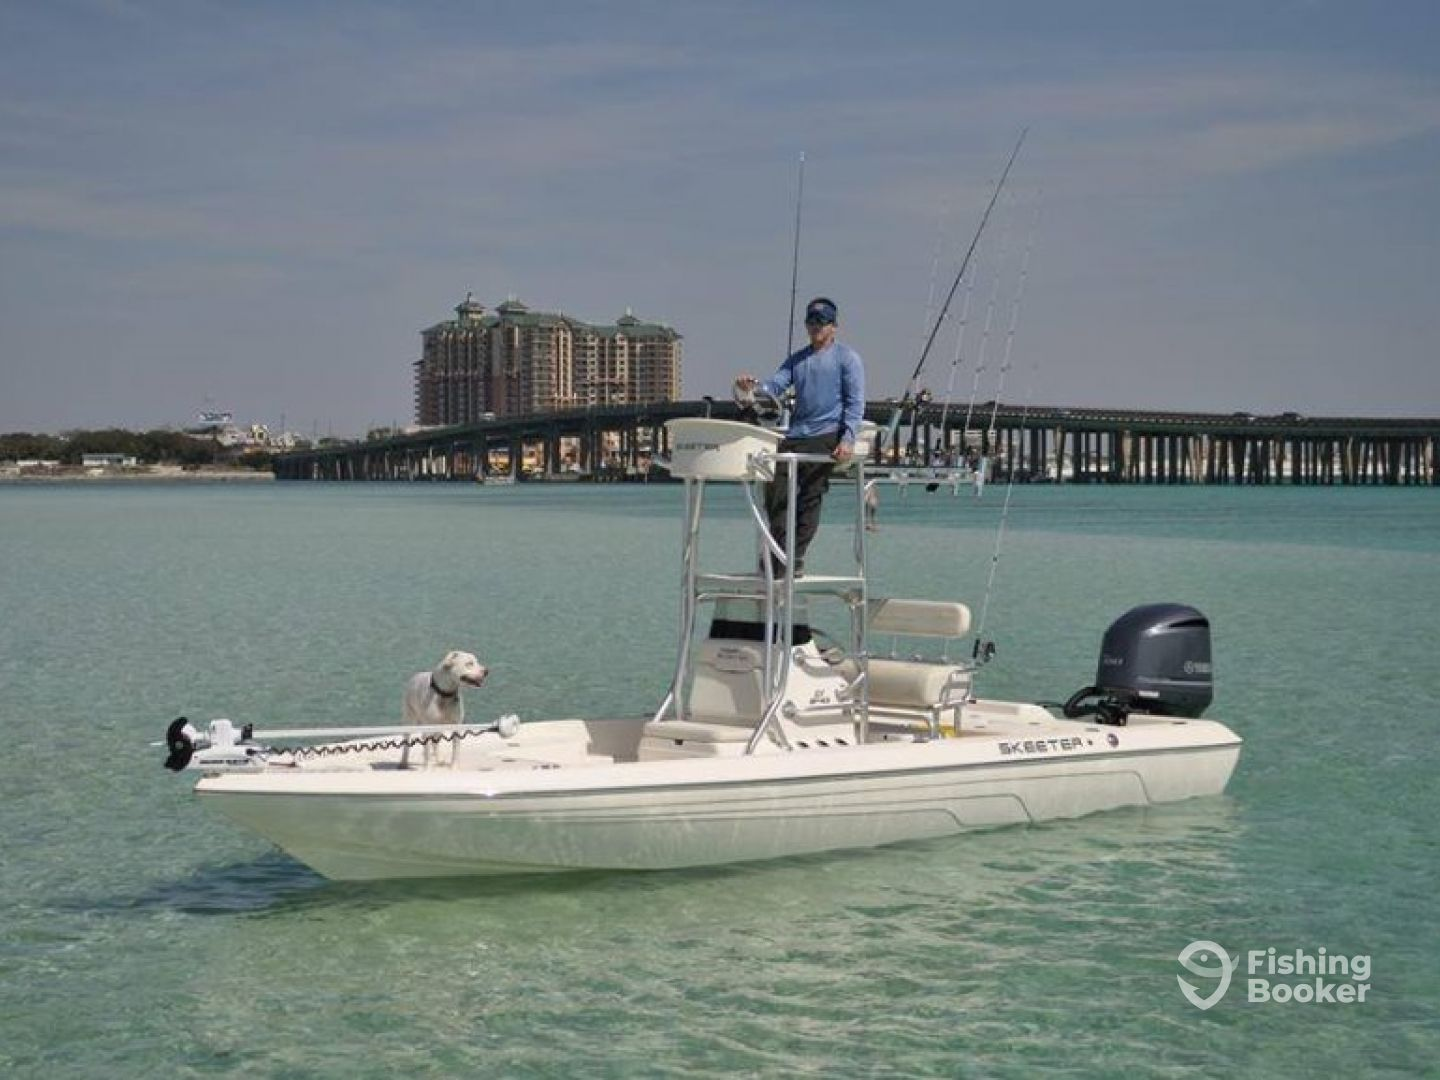 I just found Panhandle Fishing Charters on FishingBooker